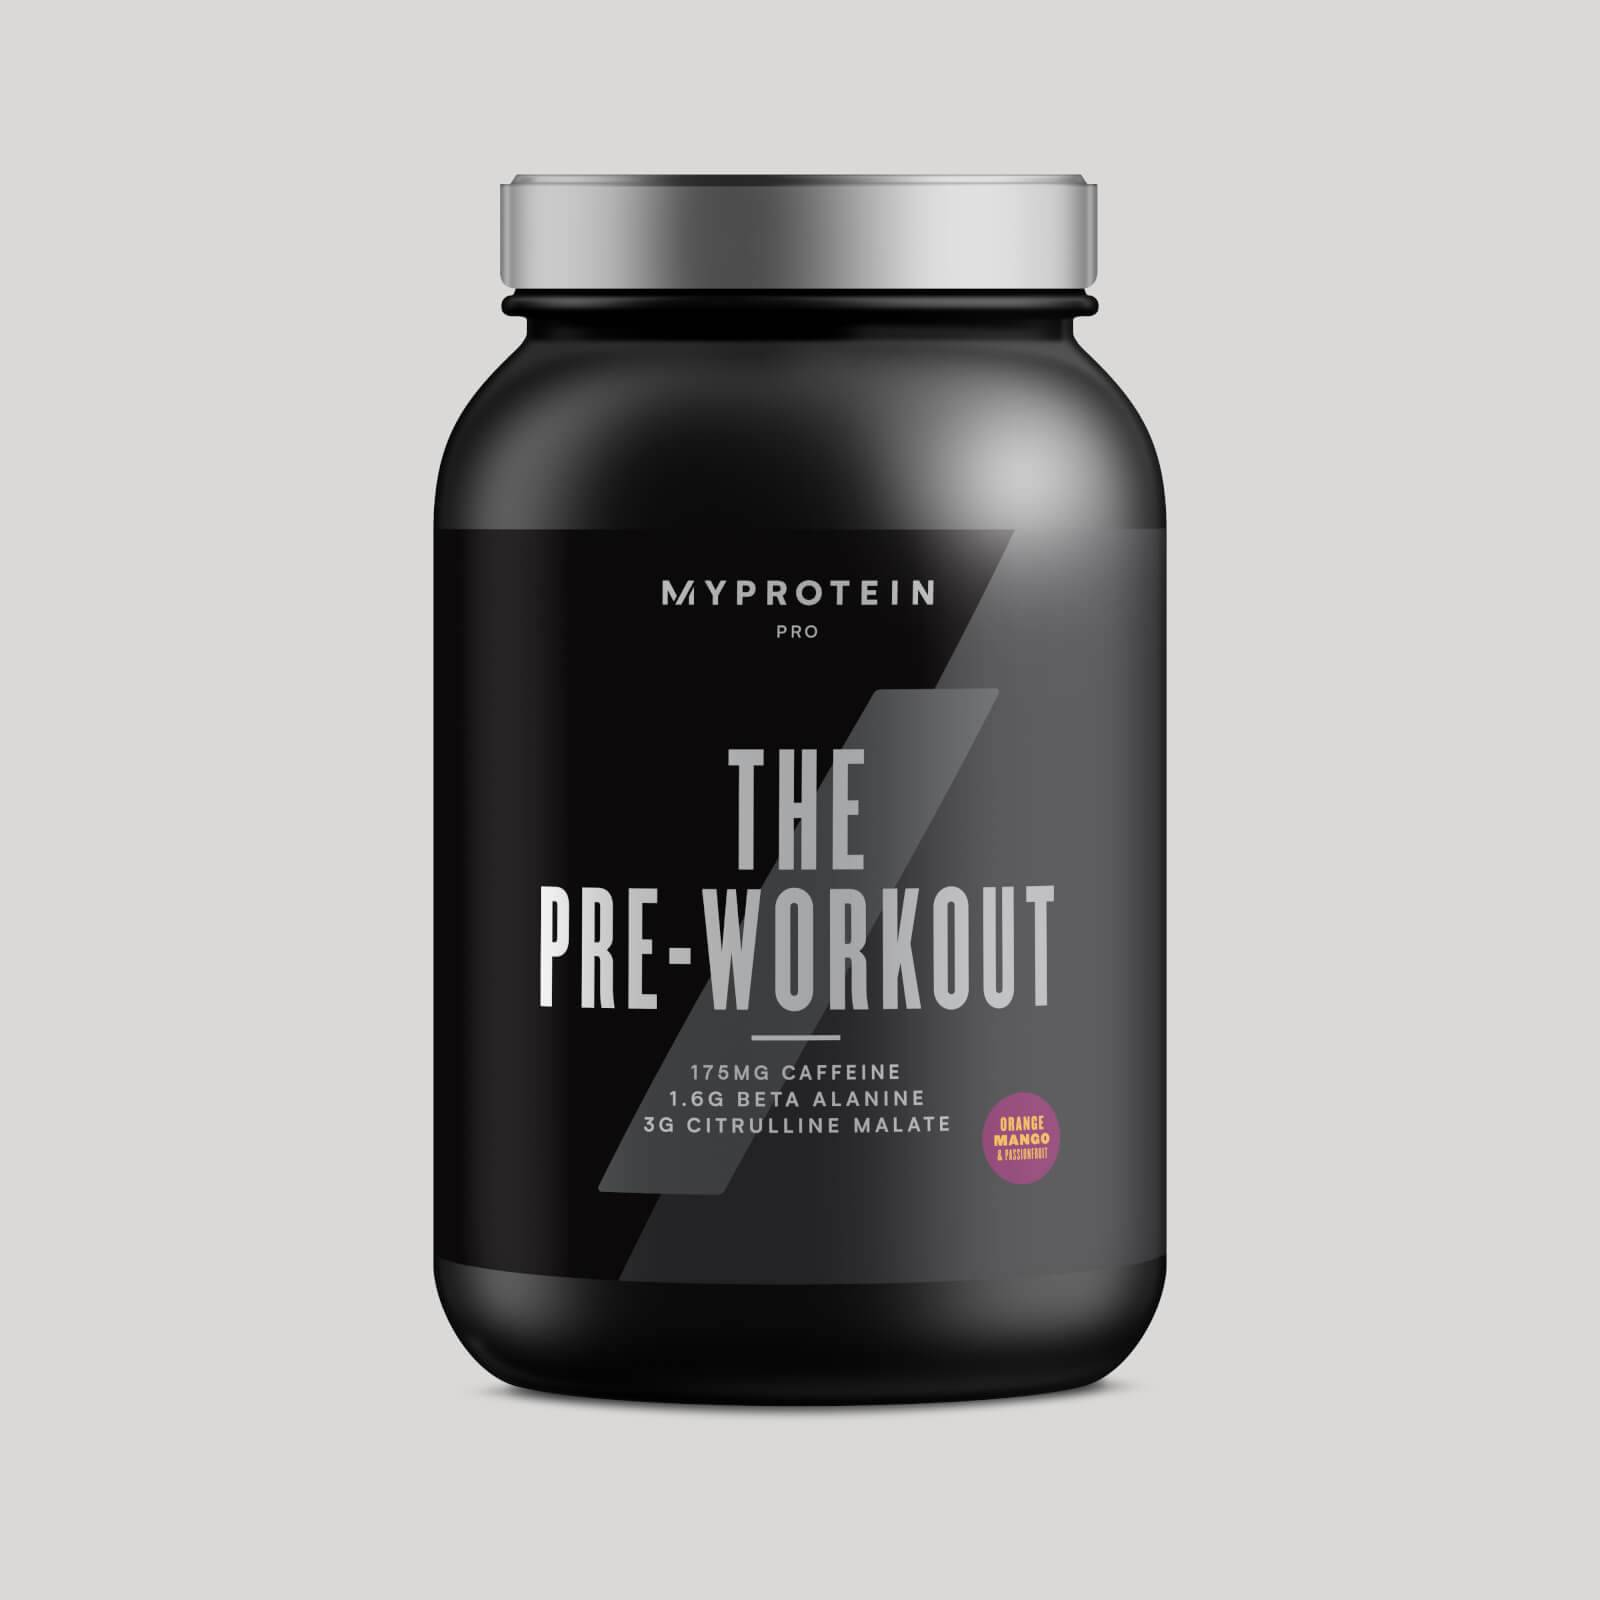 Myprotein THE Pre-Workout - 30servings - Orange Mango Passionfruit